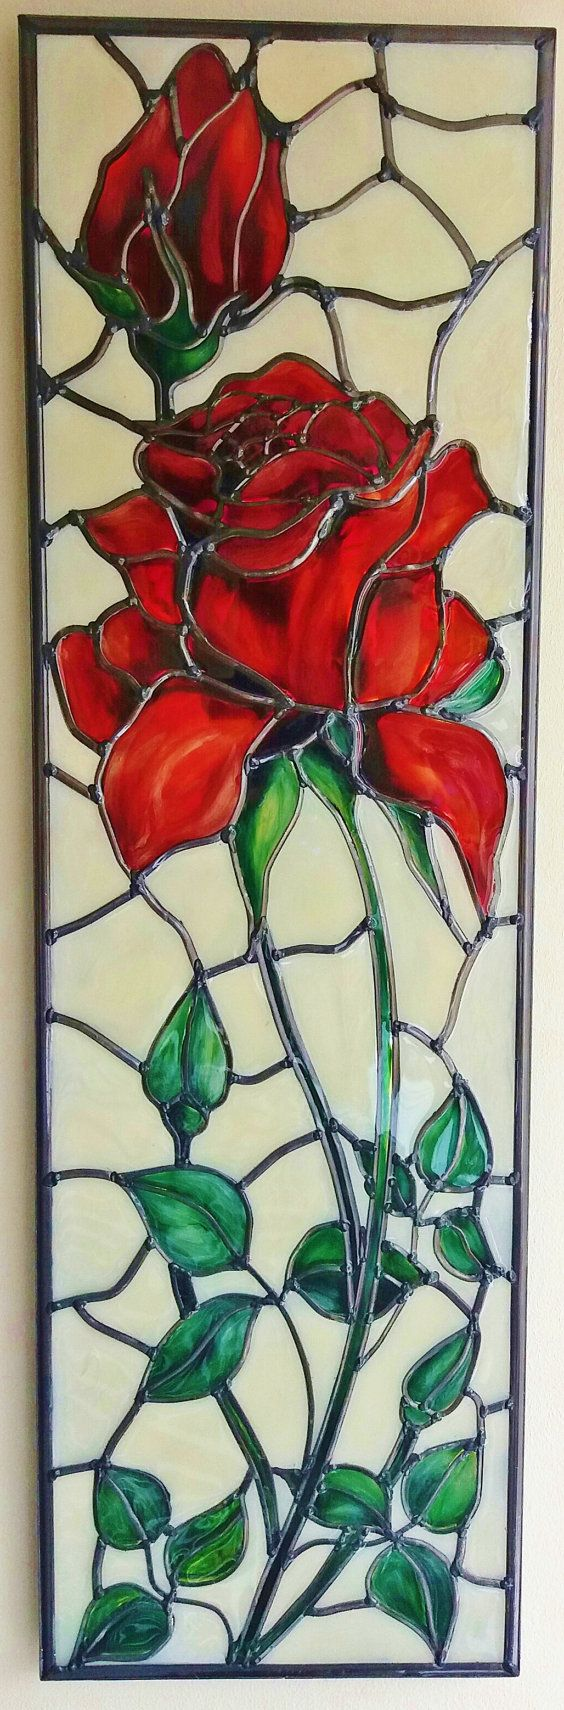 Red Rose A bespoke Art Nouveau stile Tiffany e ispirata